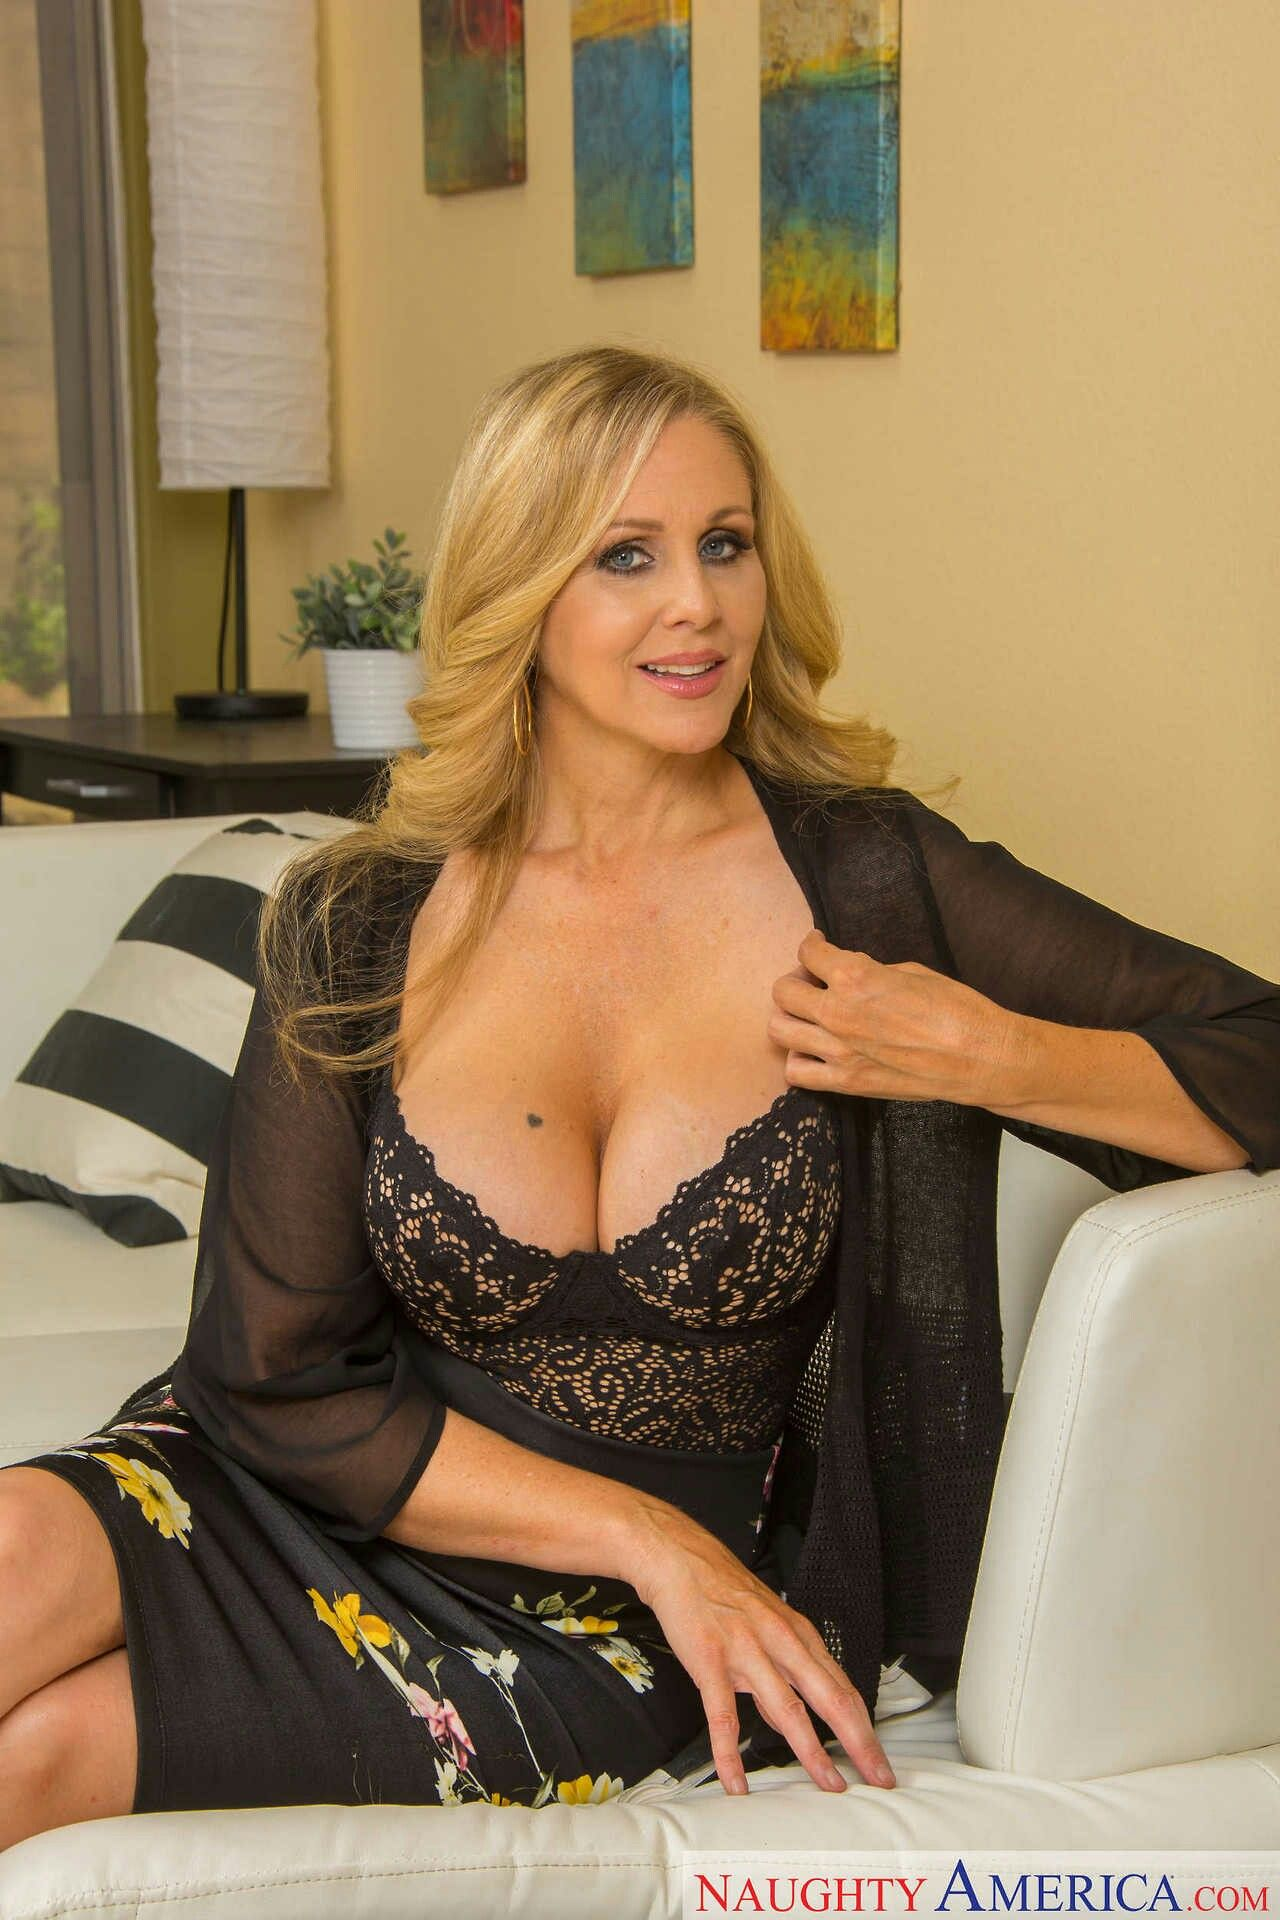 how to meet julia ann